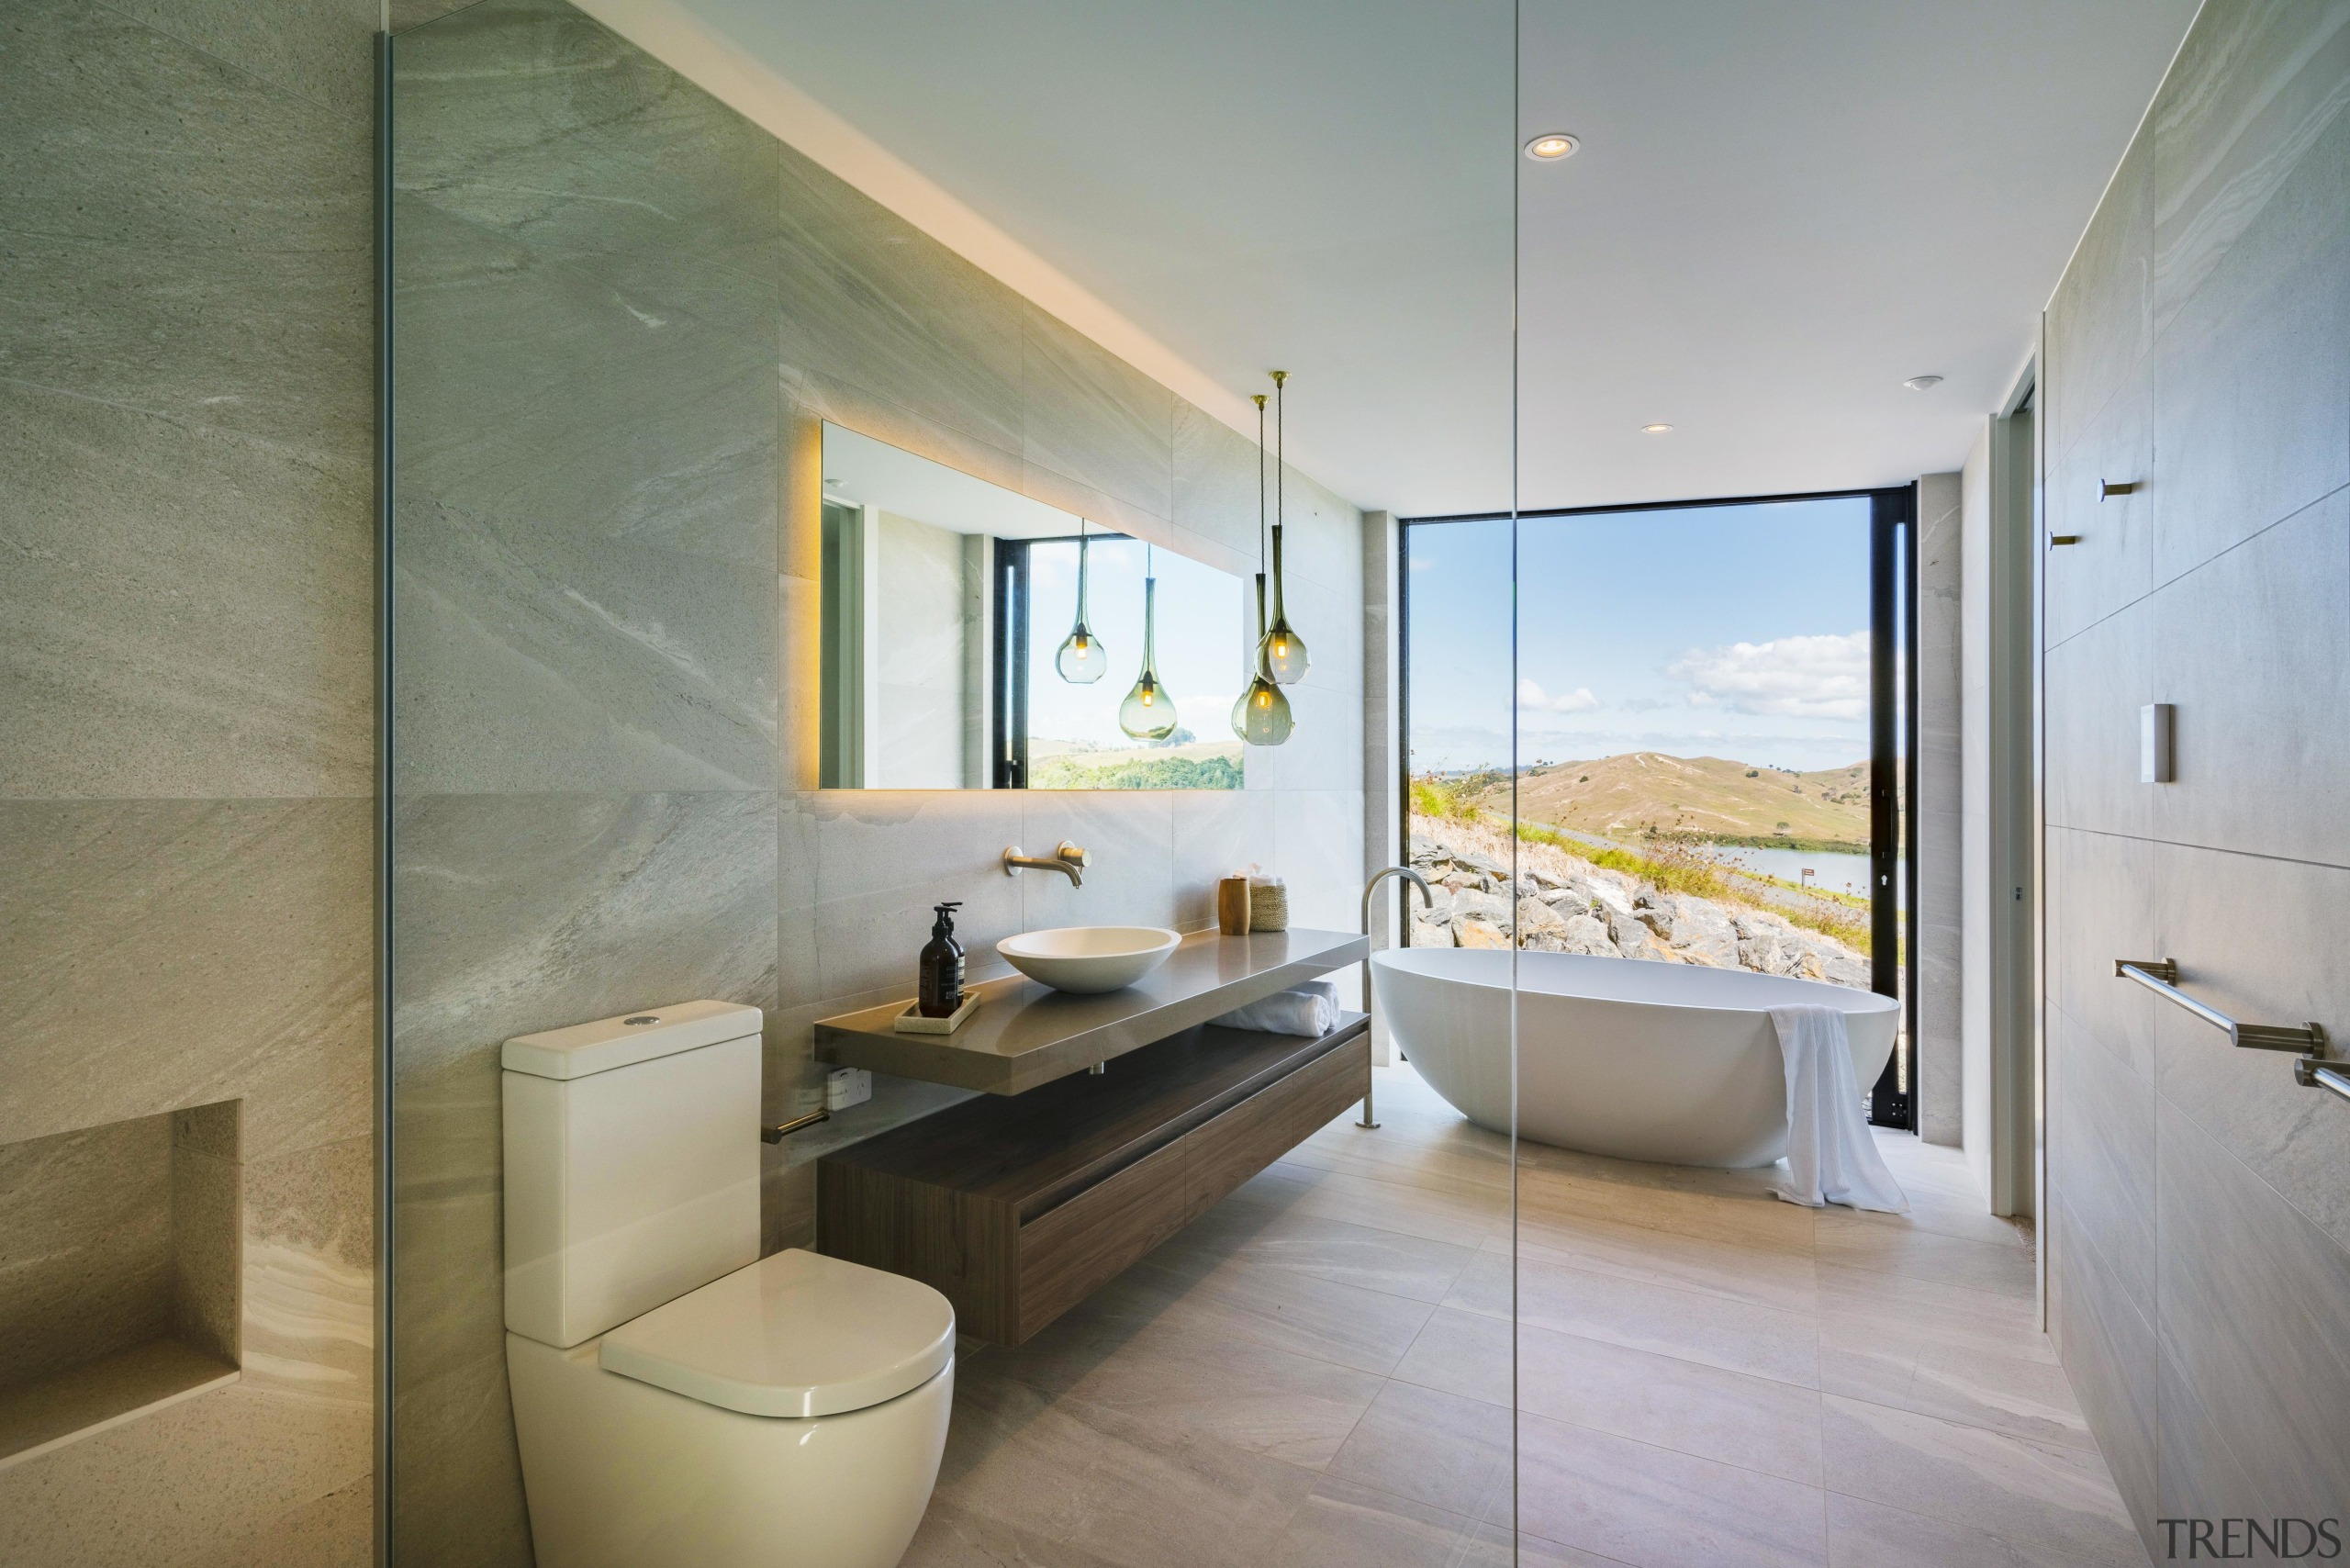 Taken from within the glass walled shower enclosure, gray